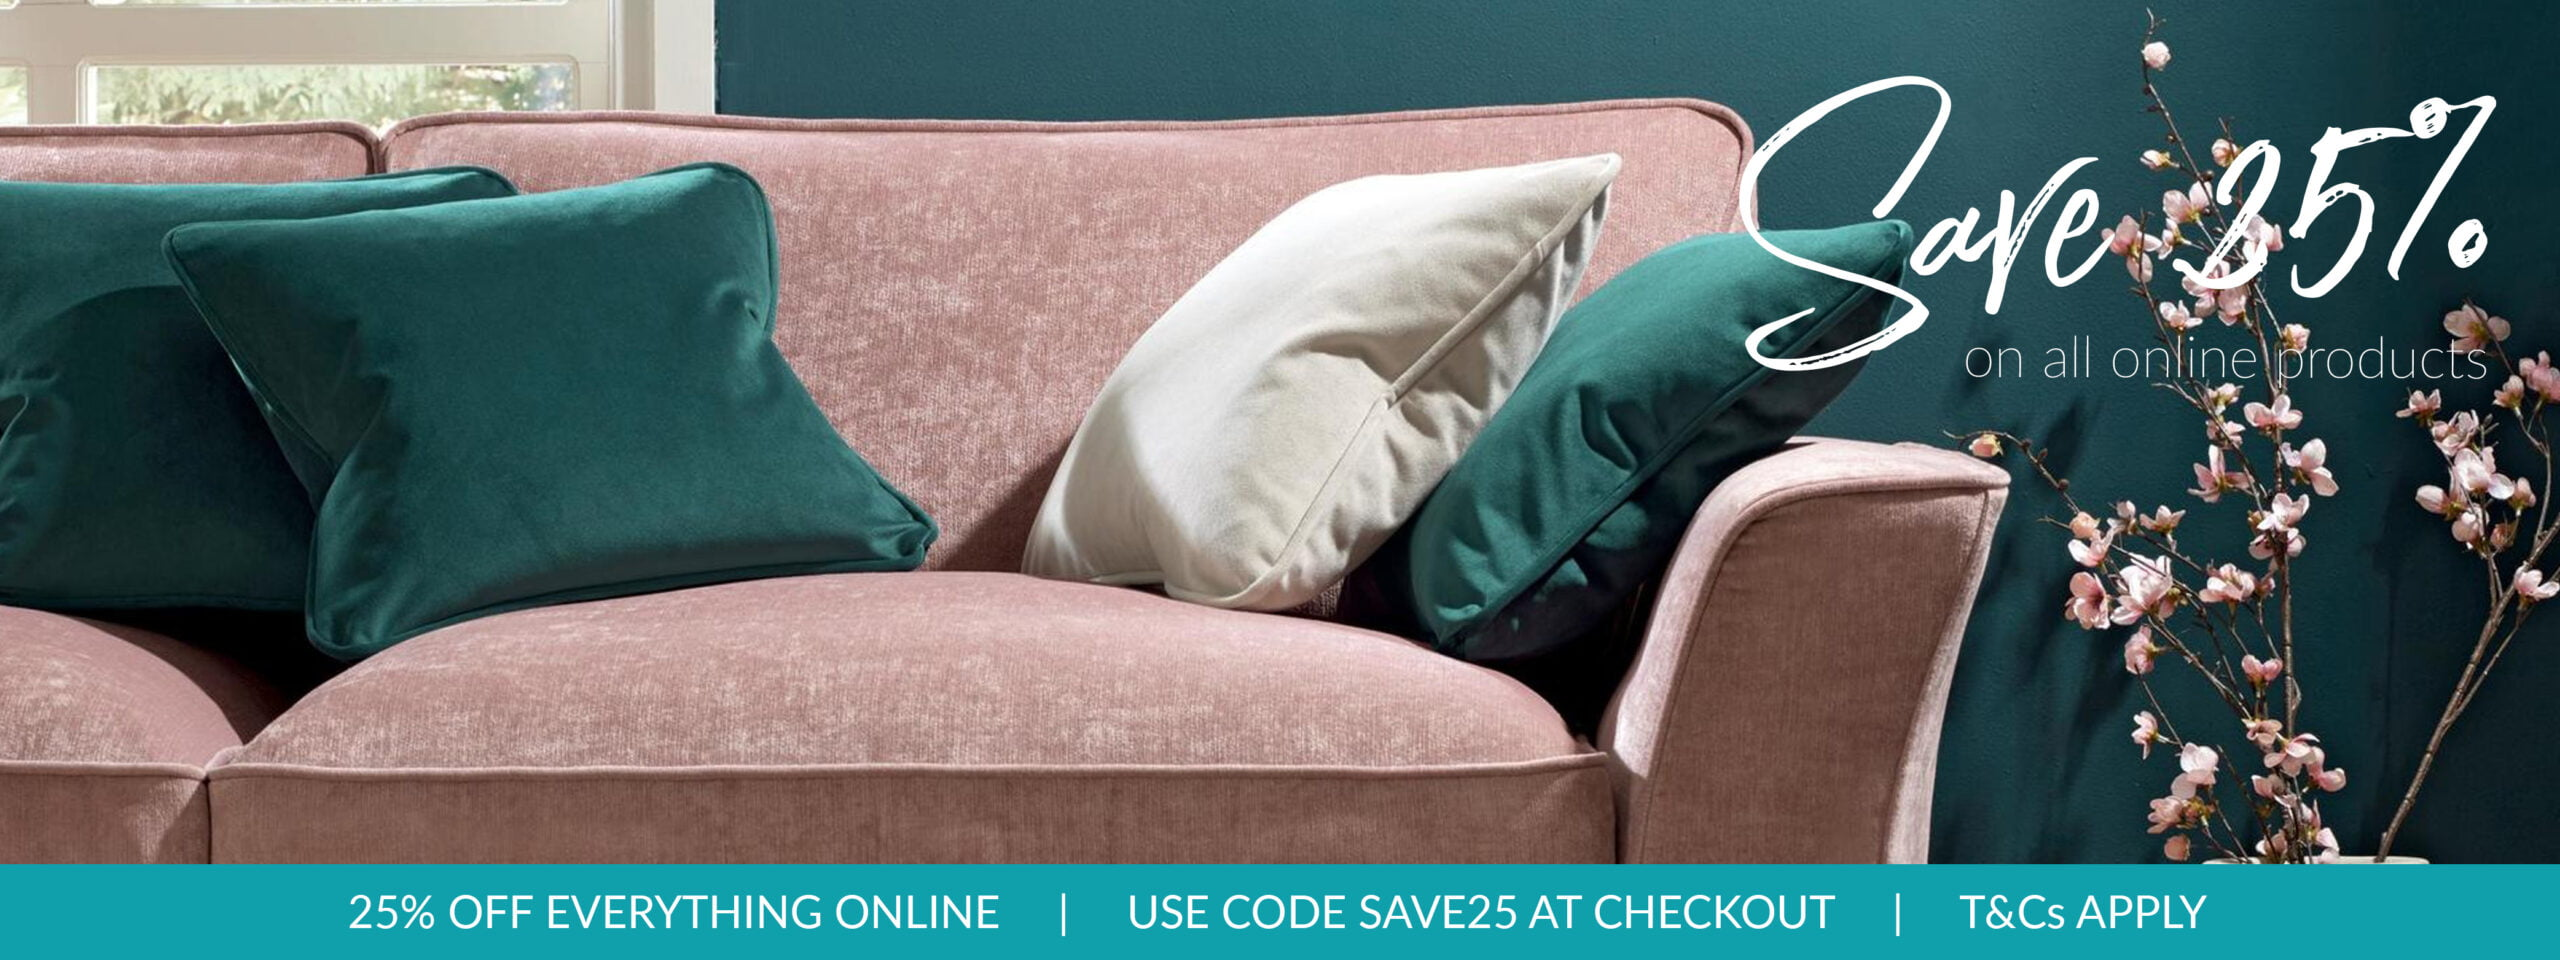 25% off everything - use code SAVE25